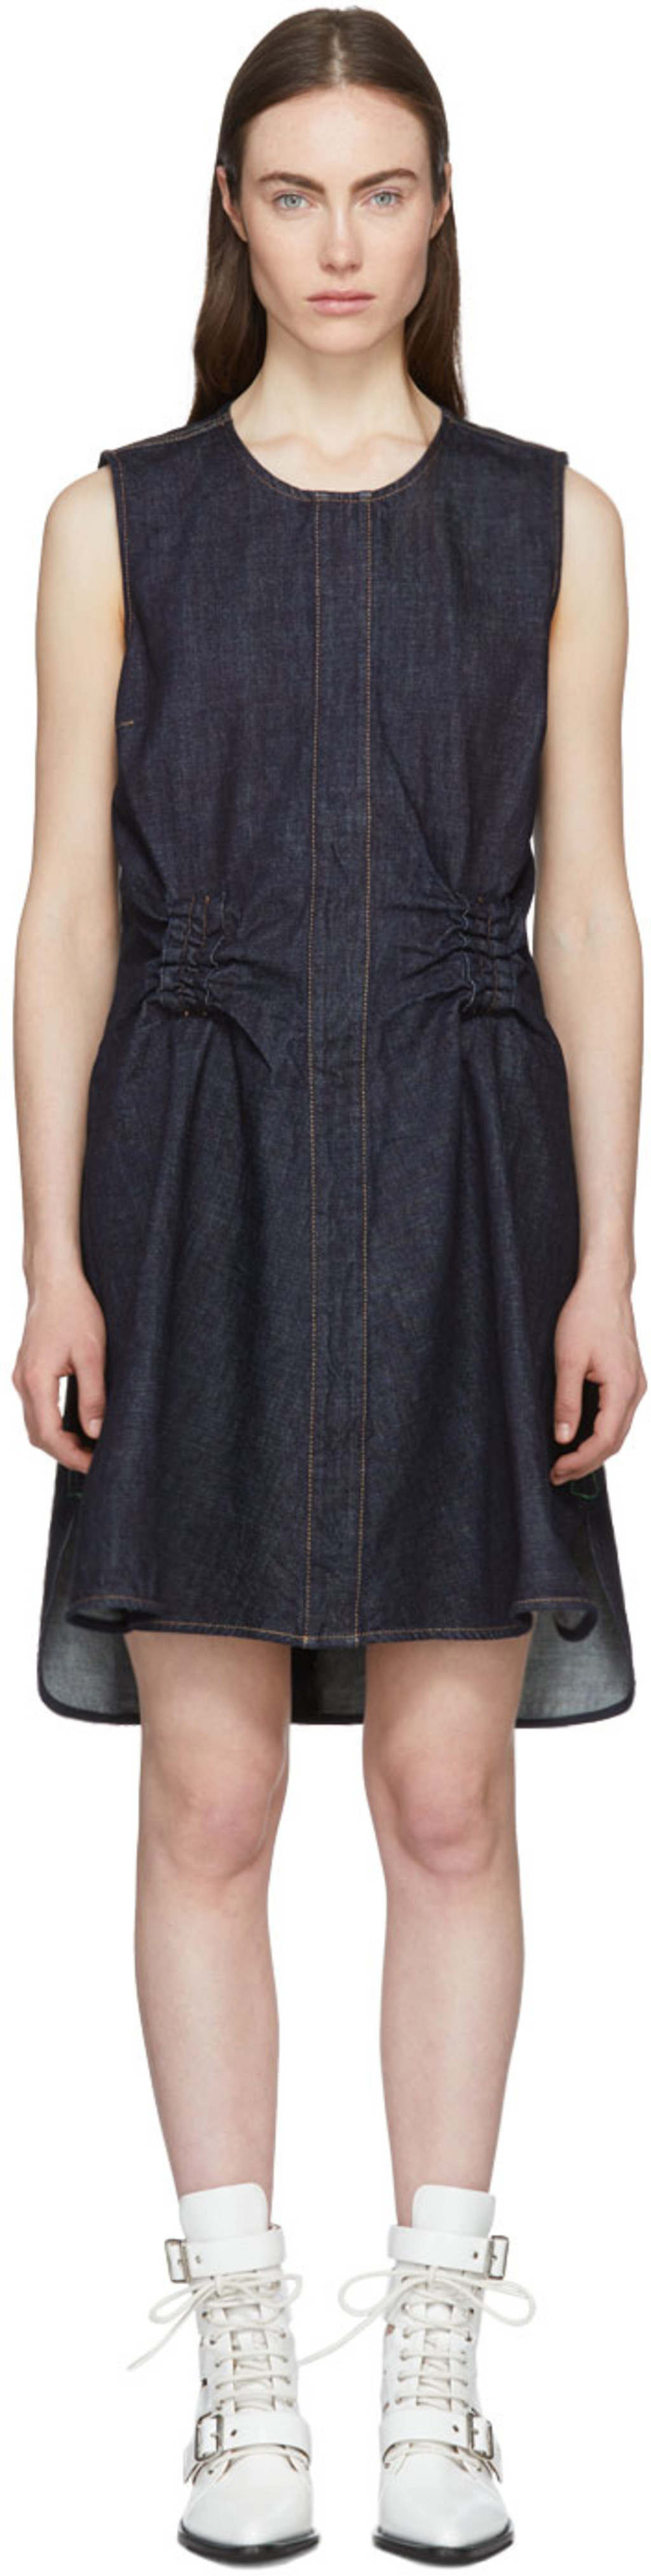 Indigo Denim Twist Back Dress Carven